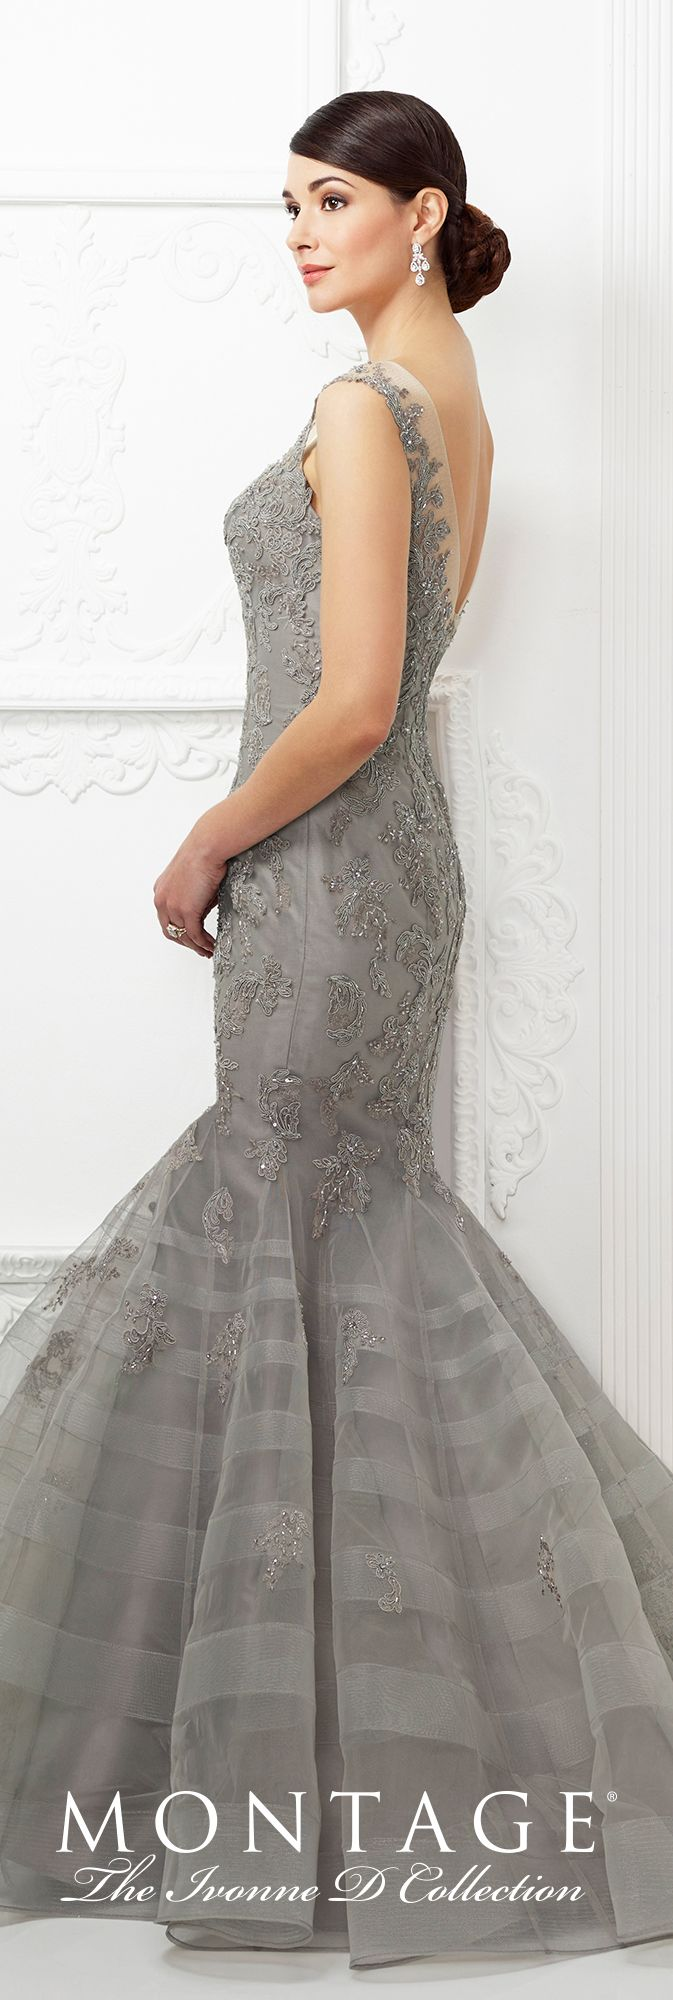 brand logo 217D81  Sleeveless lace and tulle trumpet gown with illusion trimmed front and back V-necklines, dropped waistline, tulle skirt features horsehair stripes and scattered lace appliqués, sweep train. Matching shawl included.